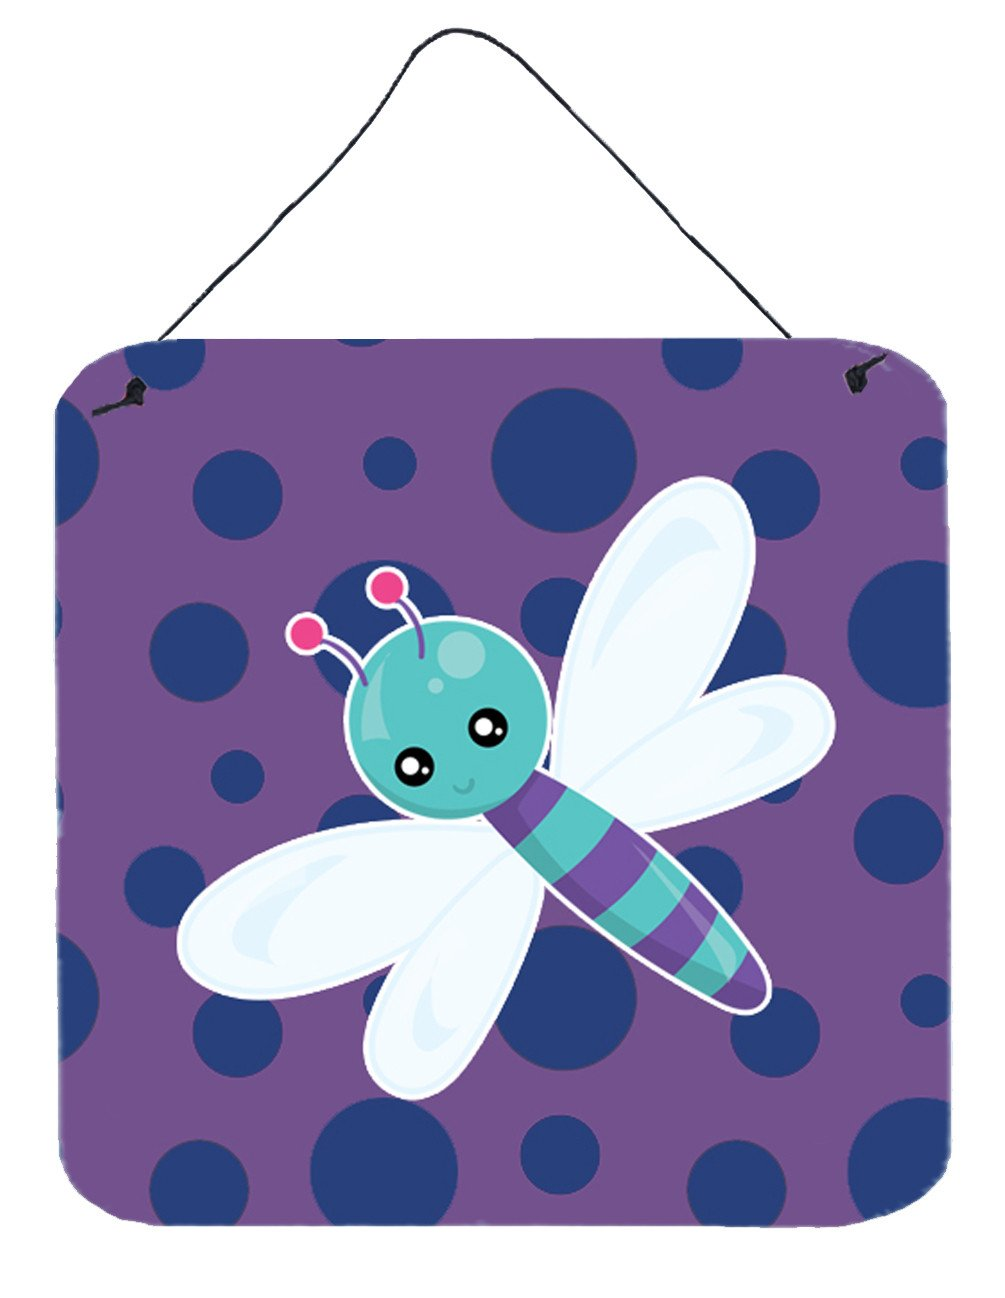 Dragonfly on Purple Polkadots Wall or Door Hanging Prints BB7099DS66 by Caroline's Treasures